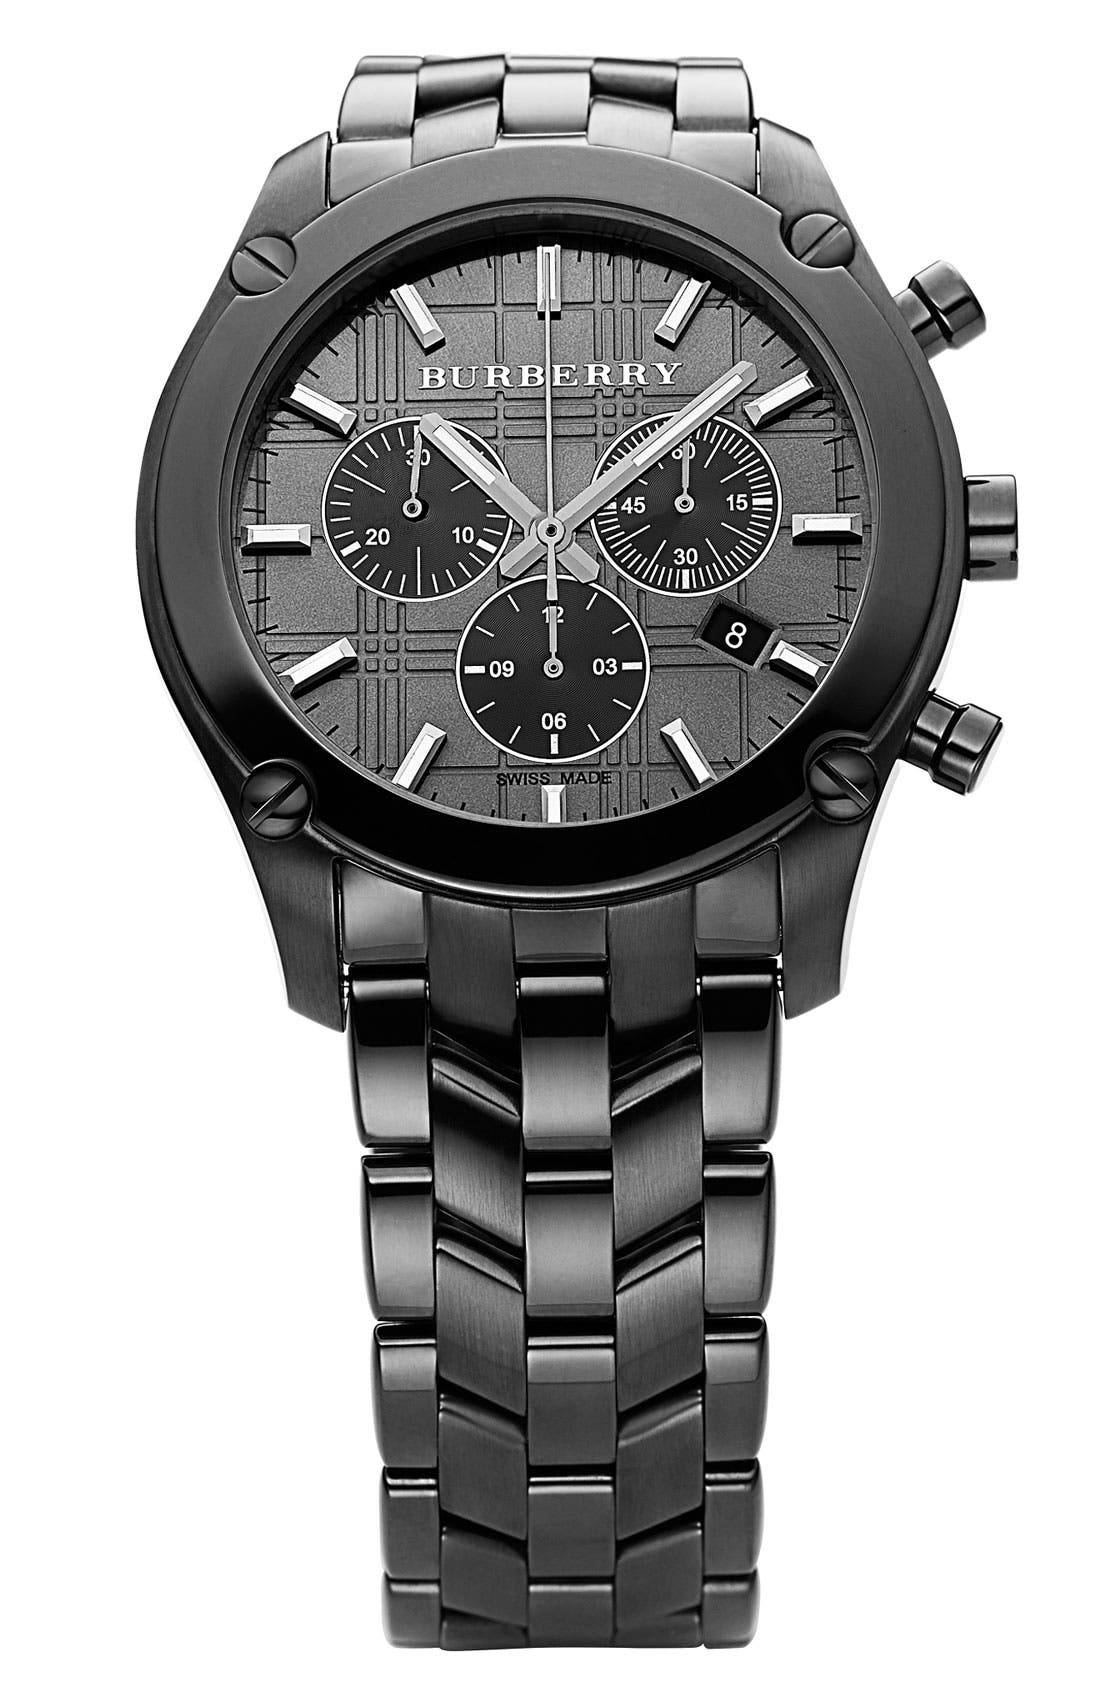 Main Image - Burberry Men's Stainless Steel Watch